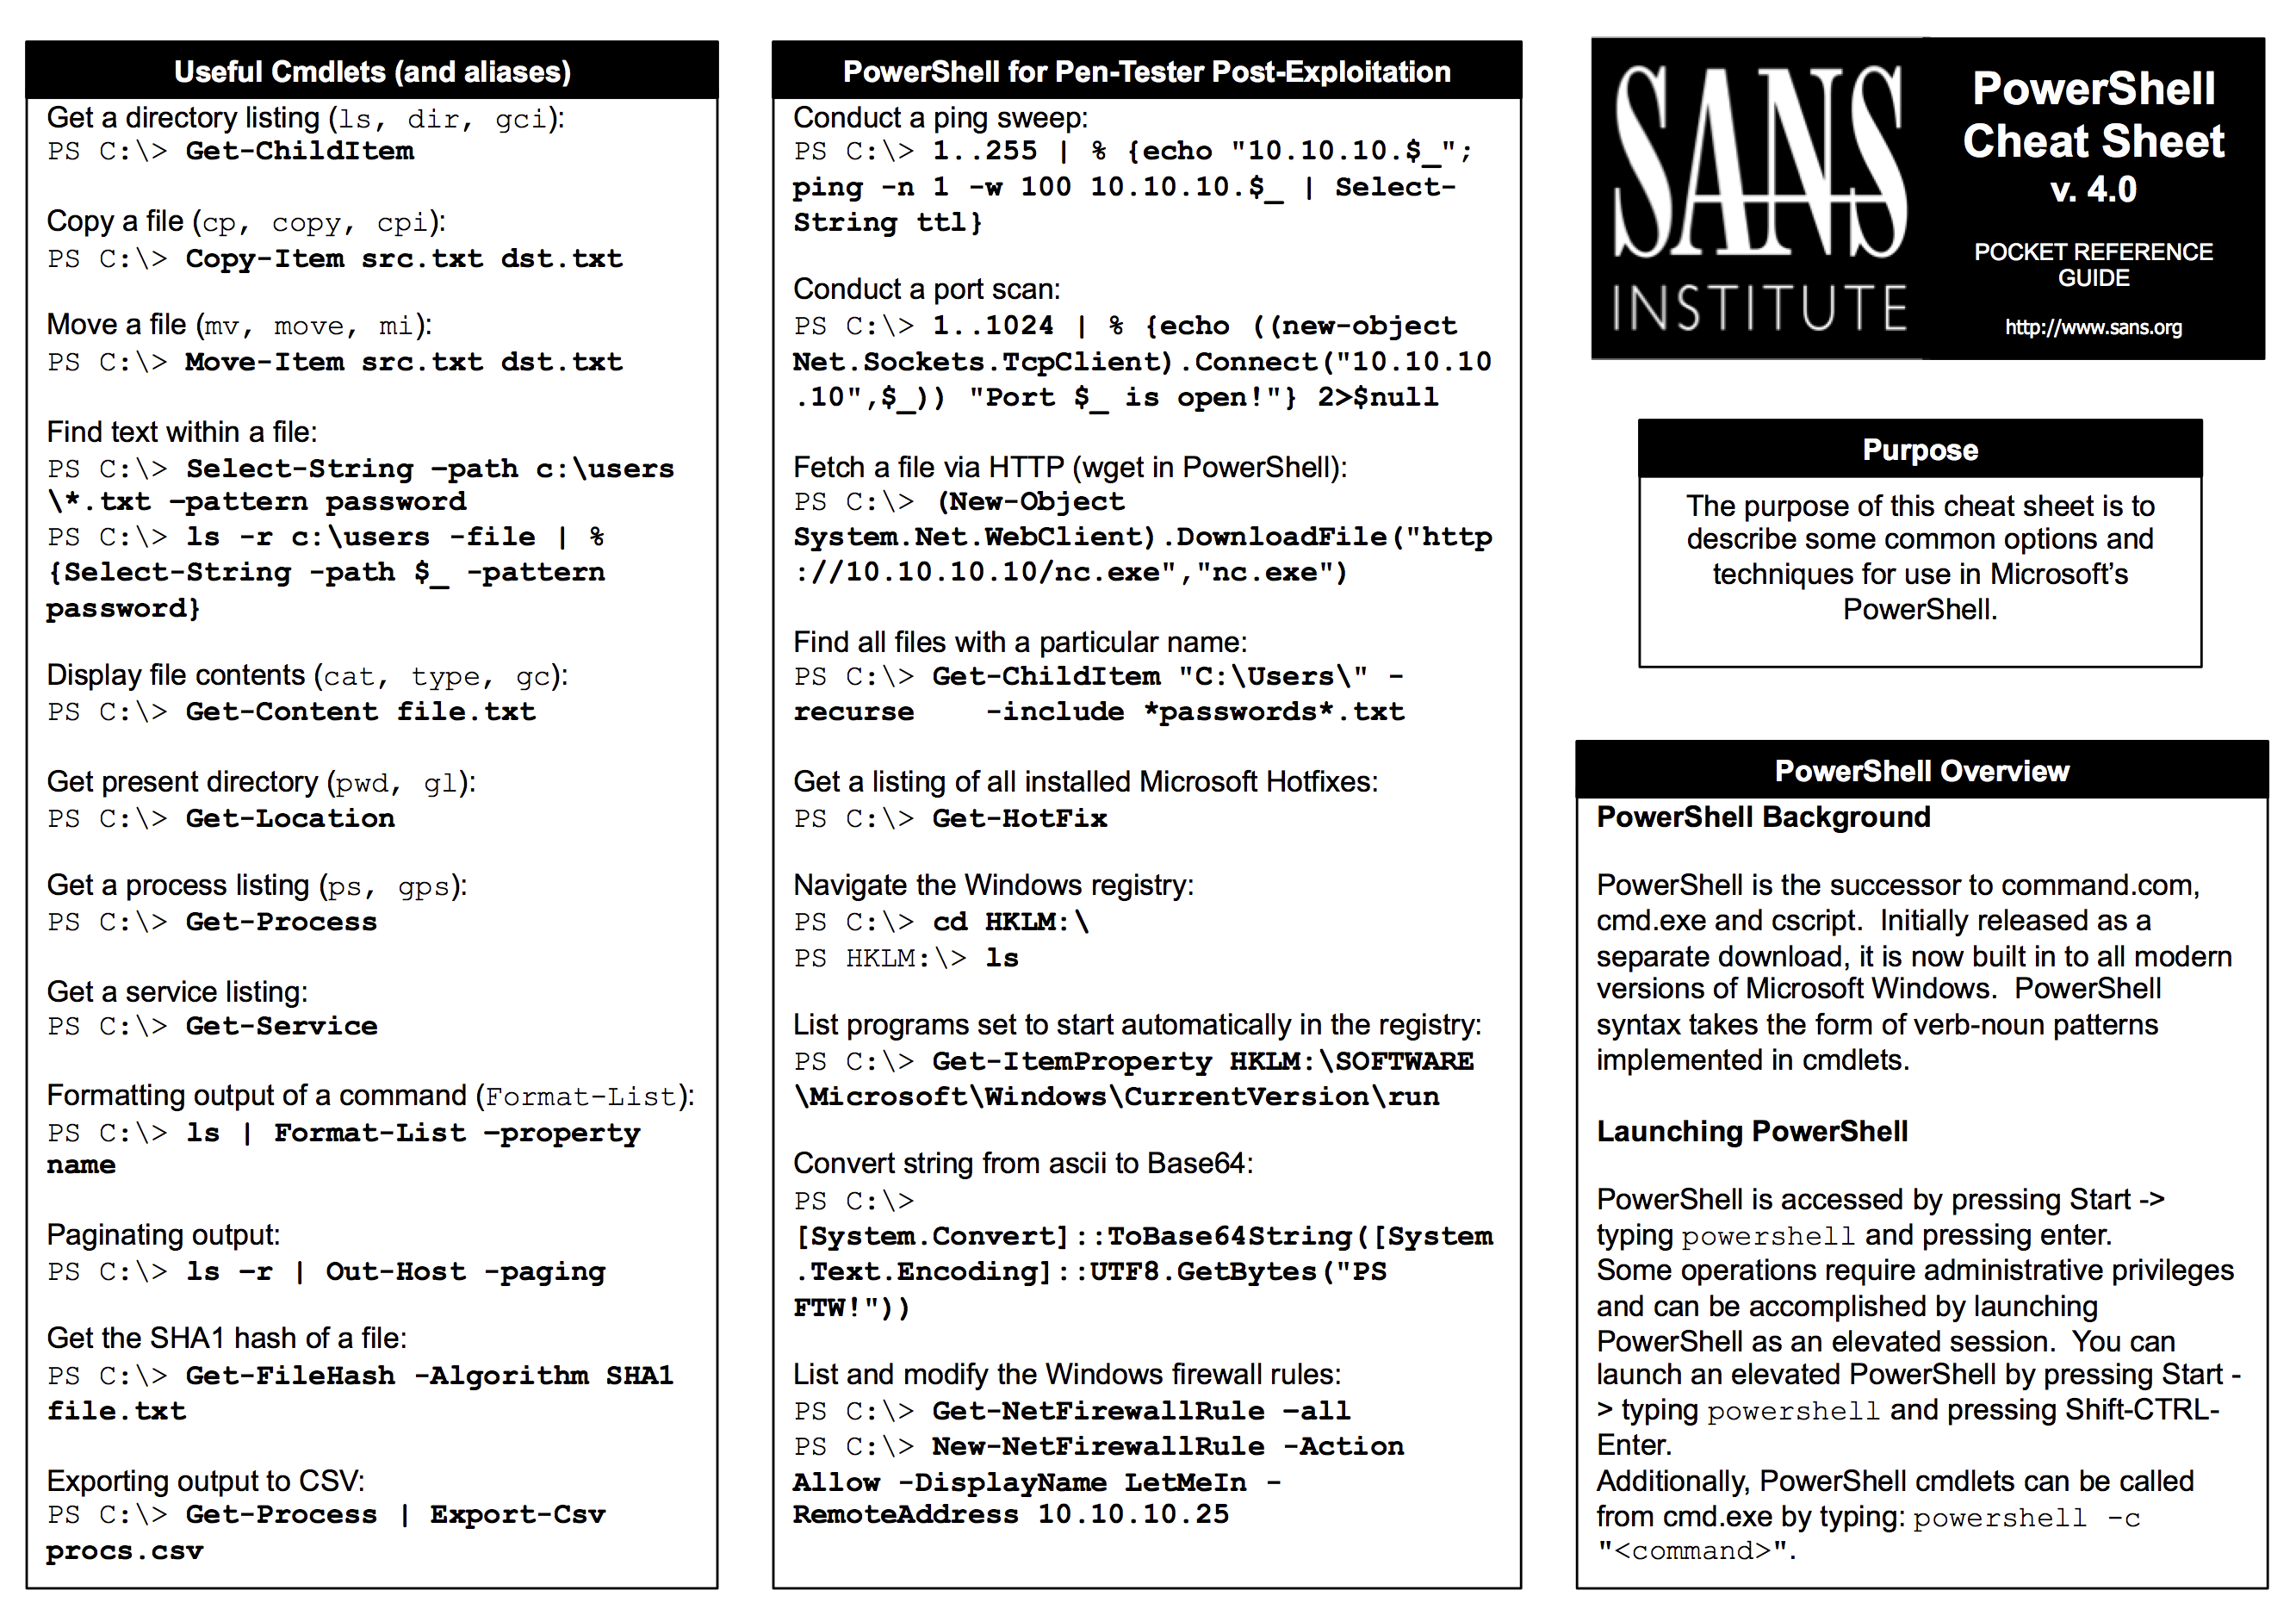 SANS Penetration Testing | SANS PowerShell Cheat Sheet from